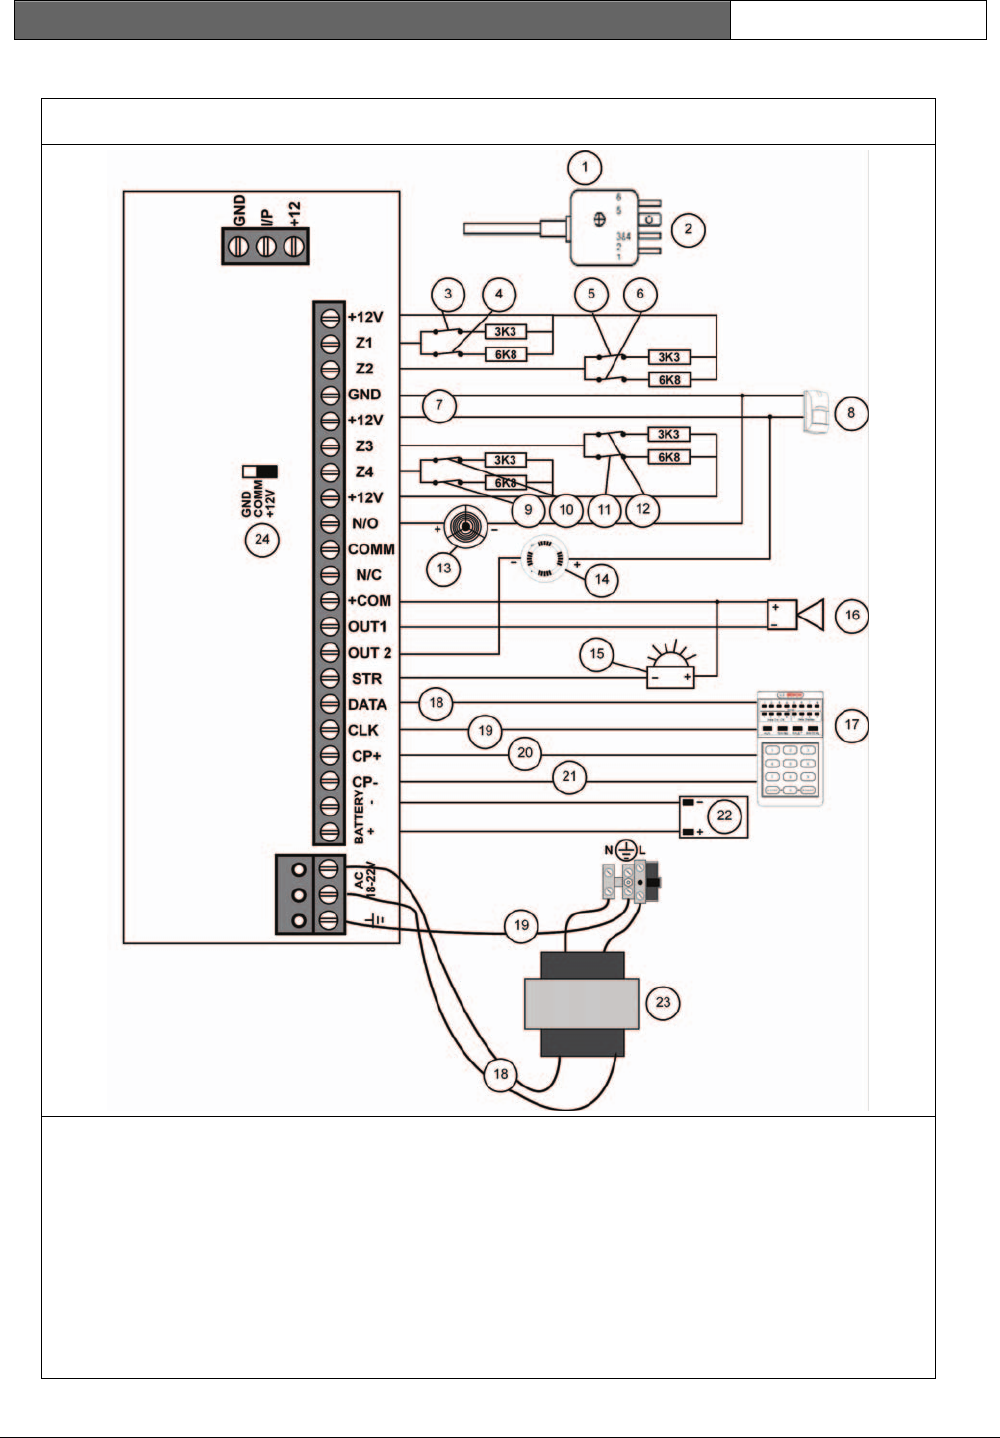 Bosch Alarm Wiring Diagram - Wiring Library • Insweb.co